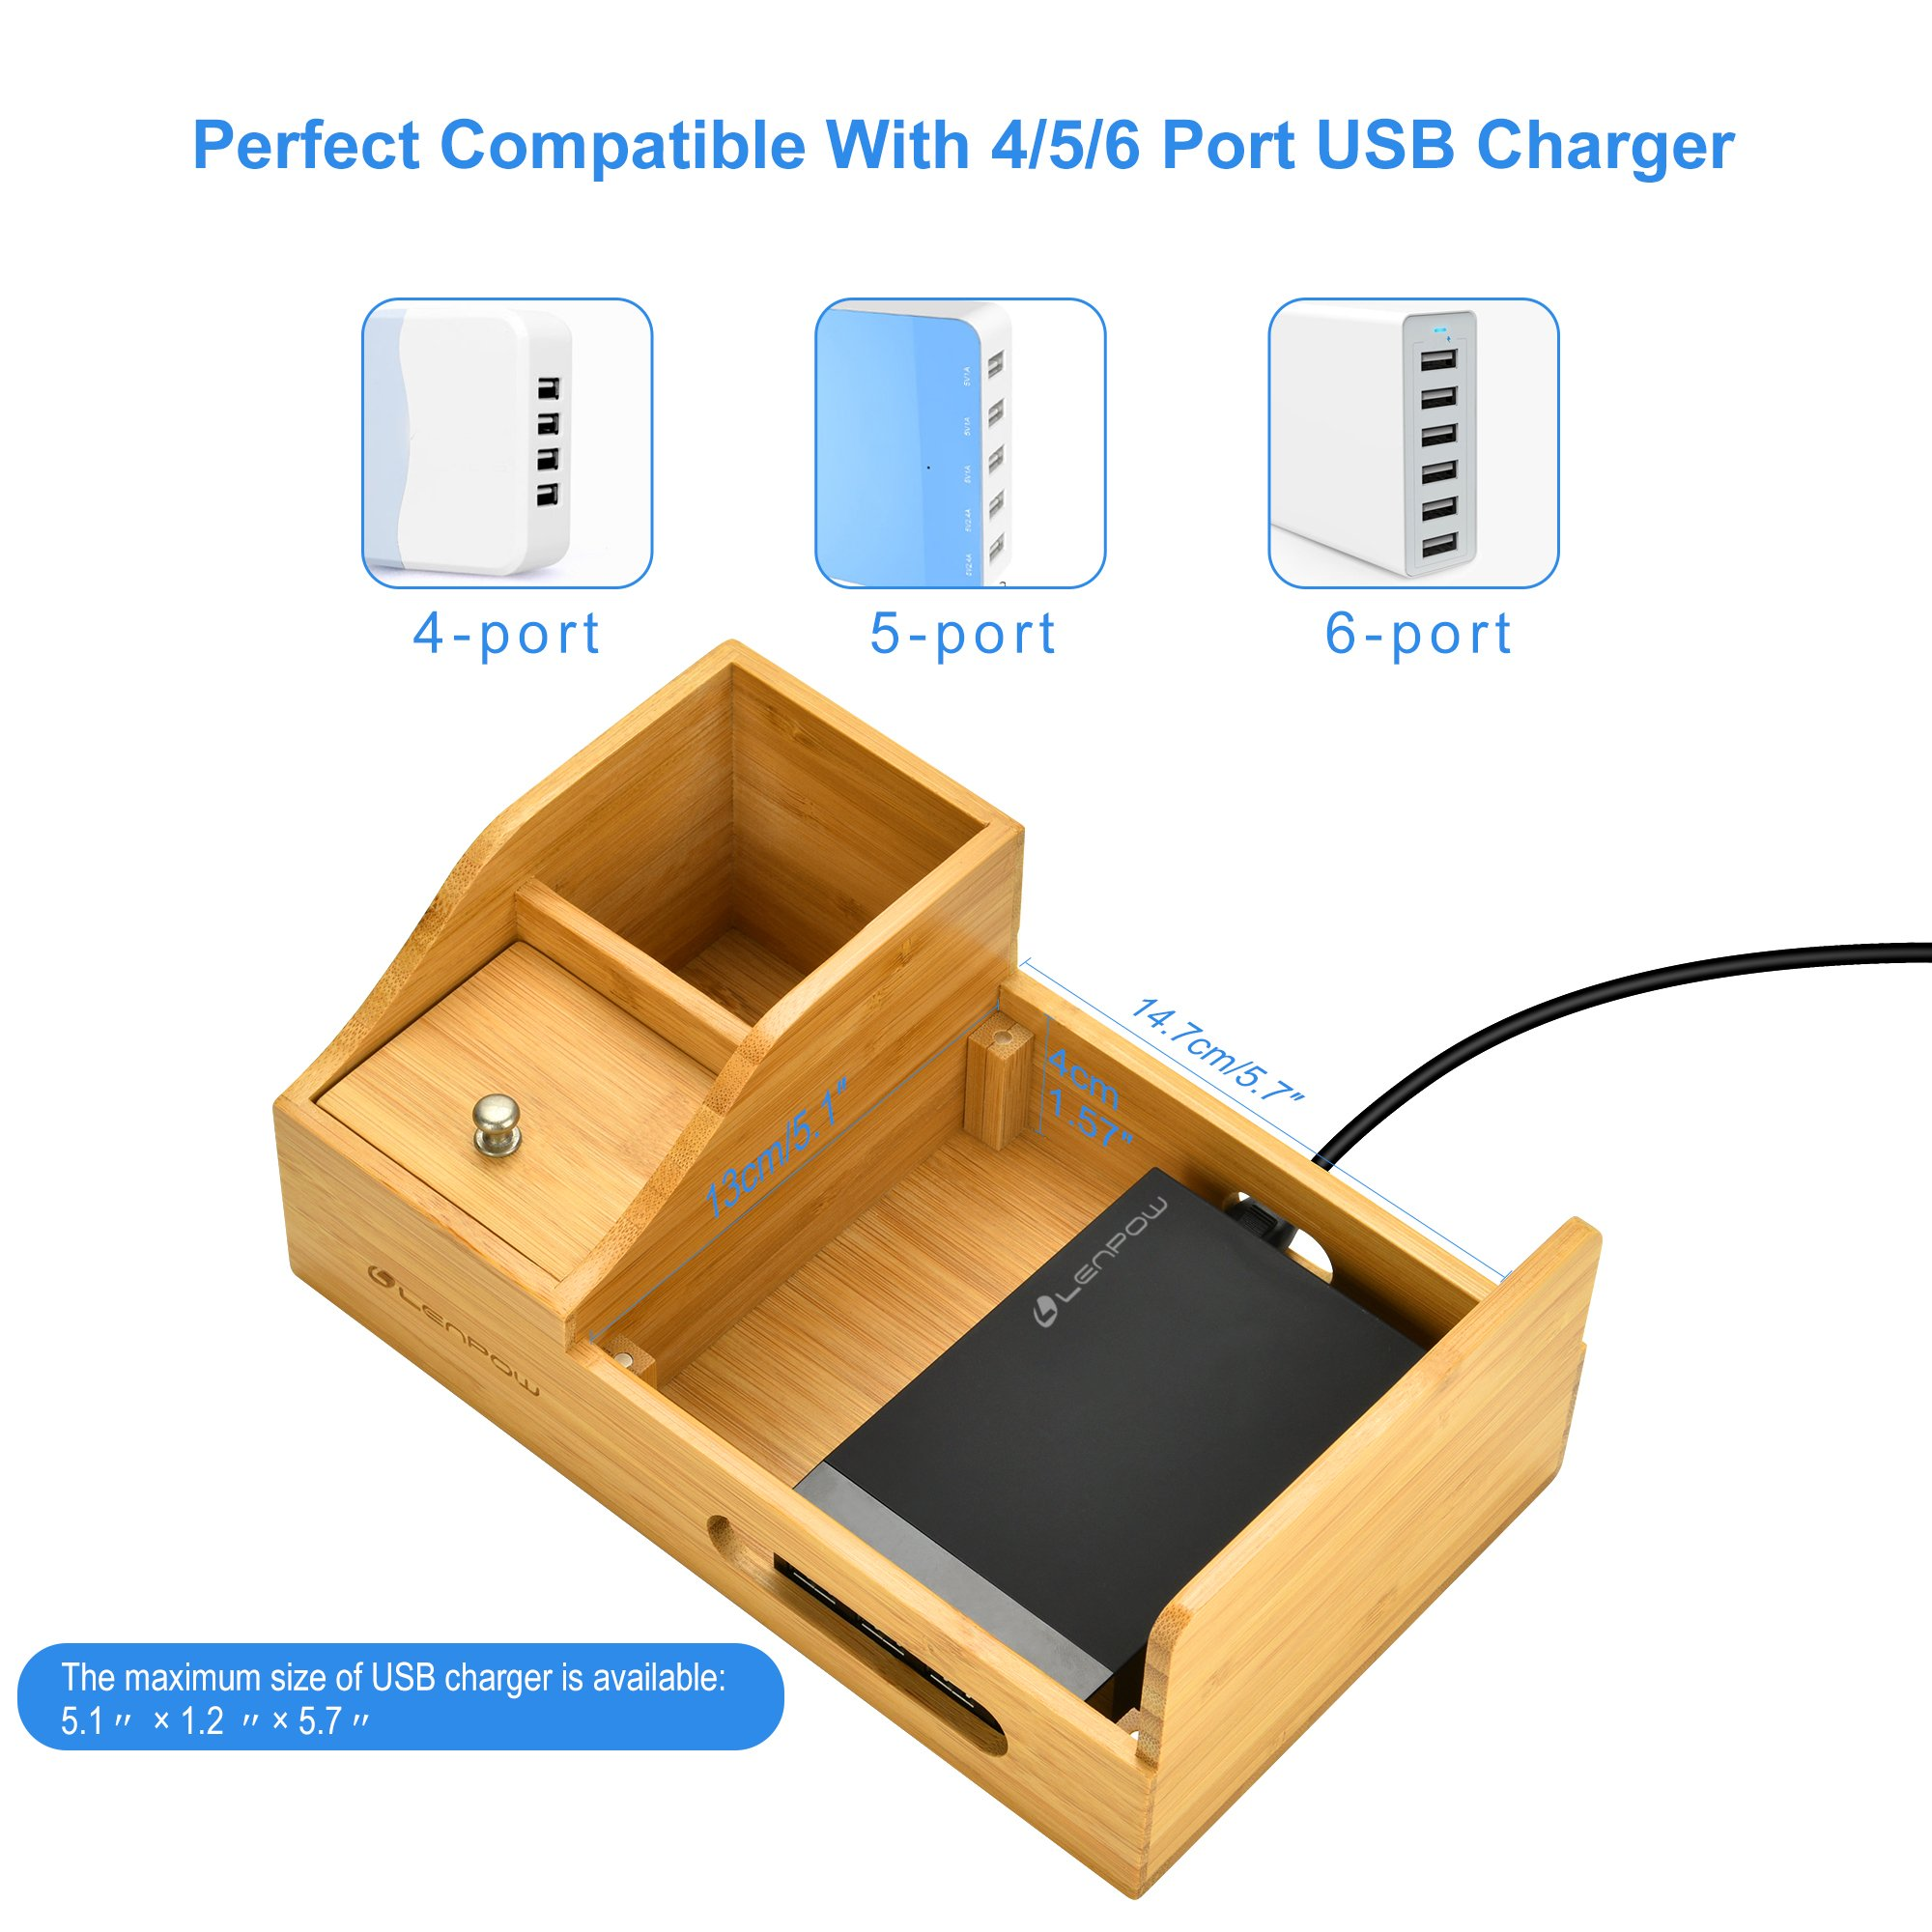 Charging Station,Firstbuy Bamboo Charging Dock Multi Device Charging Stand Cable Cords Desktop Organizer,Compatible with Most of the 4/5/6 Port USB Charger for Smartphones and Tablets